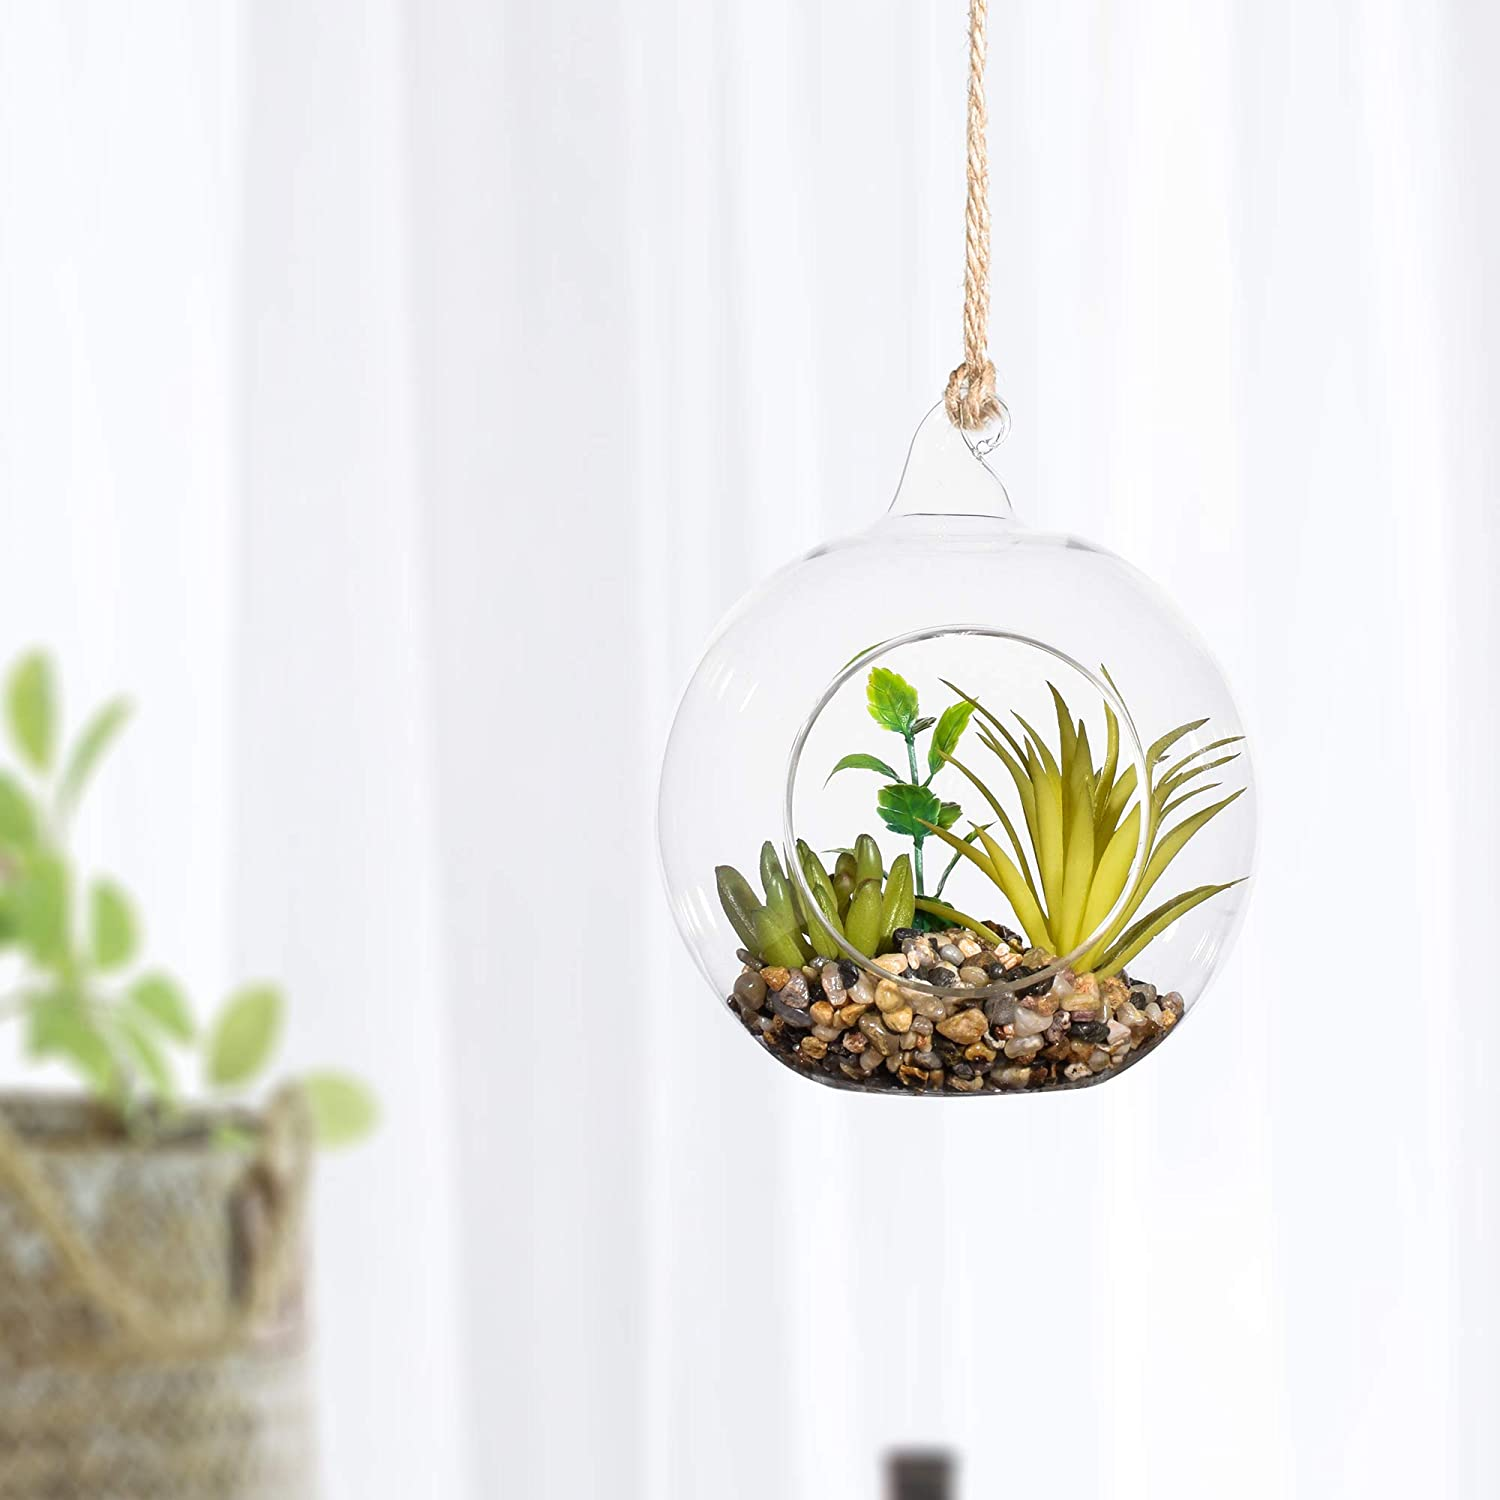 Ecosides 4.75 Artificial Succulents in Hanging Orb Terrarium with Pull Ring /& Flat Bottom,With Rope , pull ring C 4.75,16cm